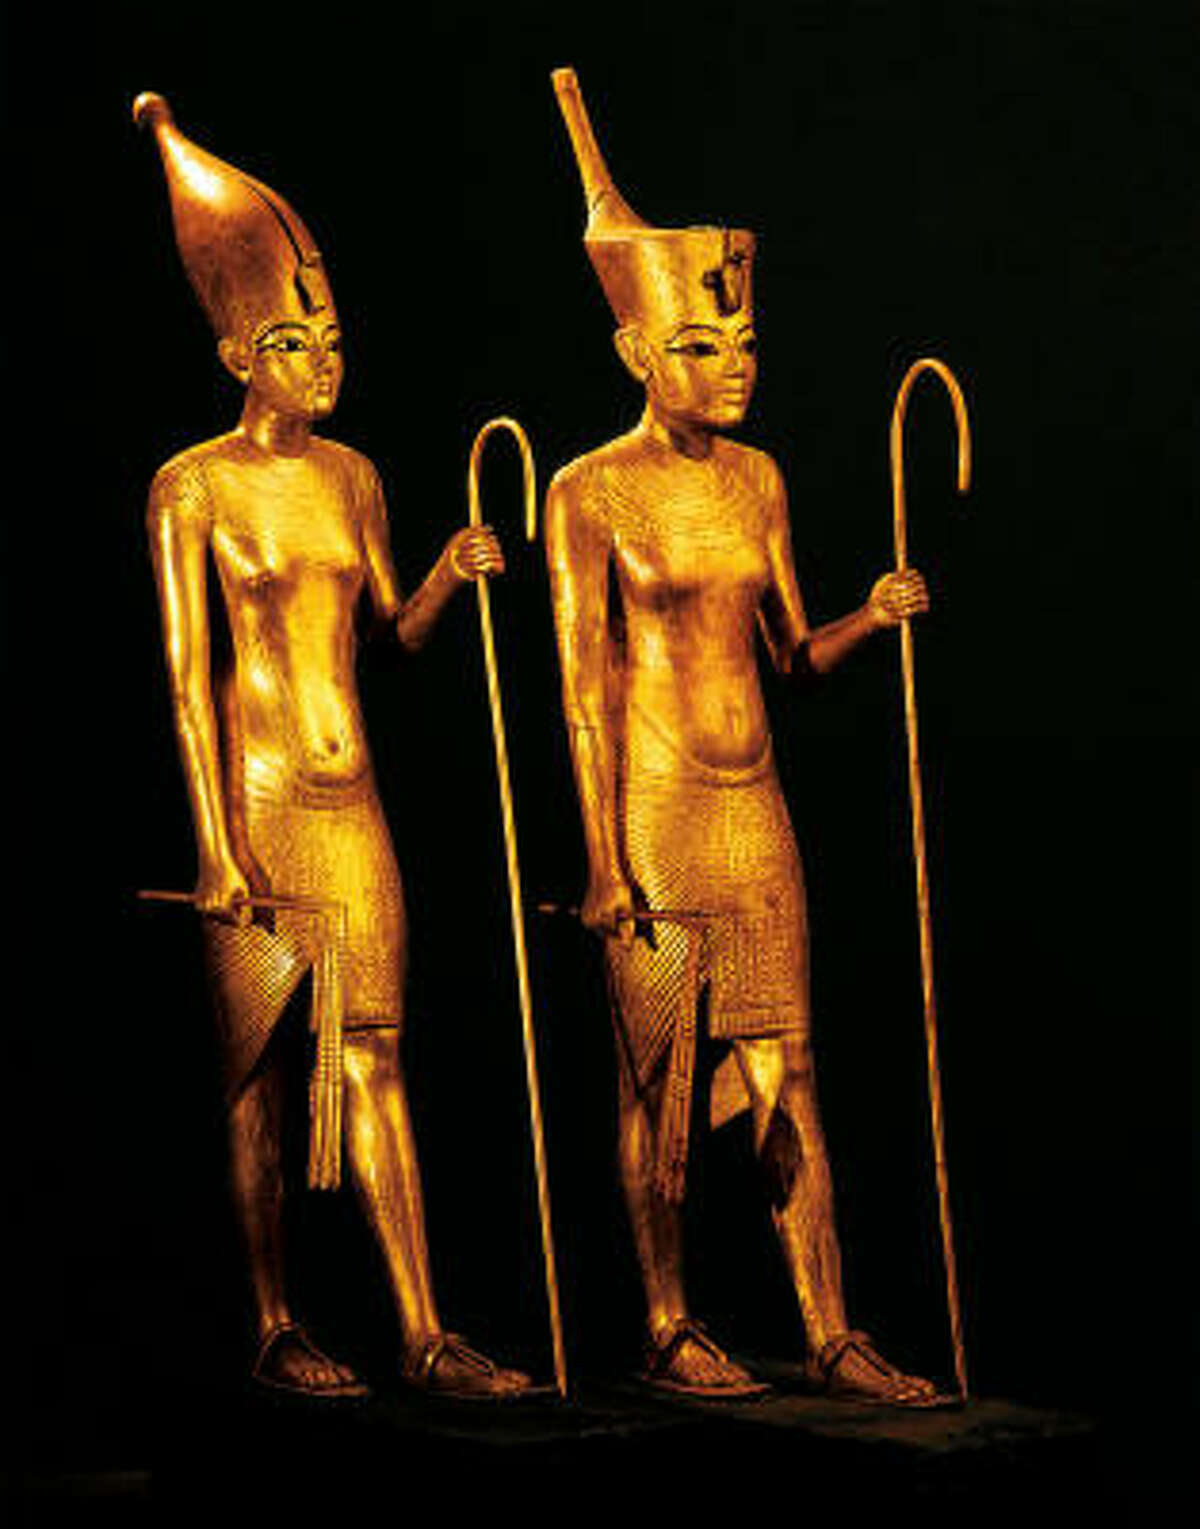 These golden statuettes of King Tut show him wearing the crowns of Upper and Lower Egypt.